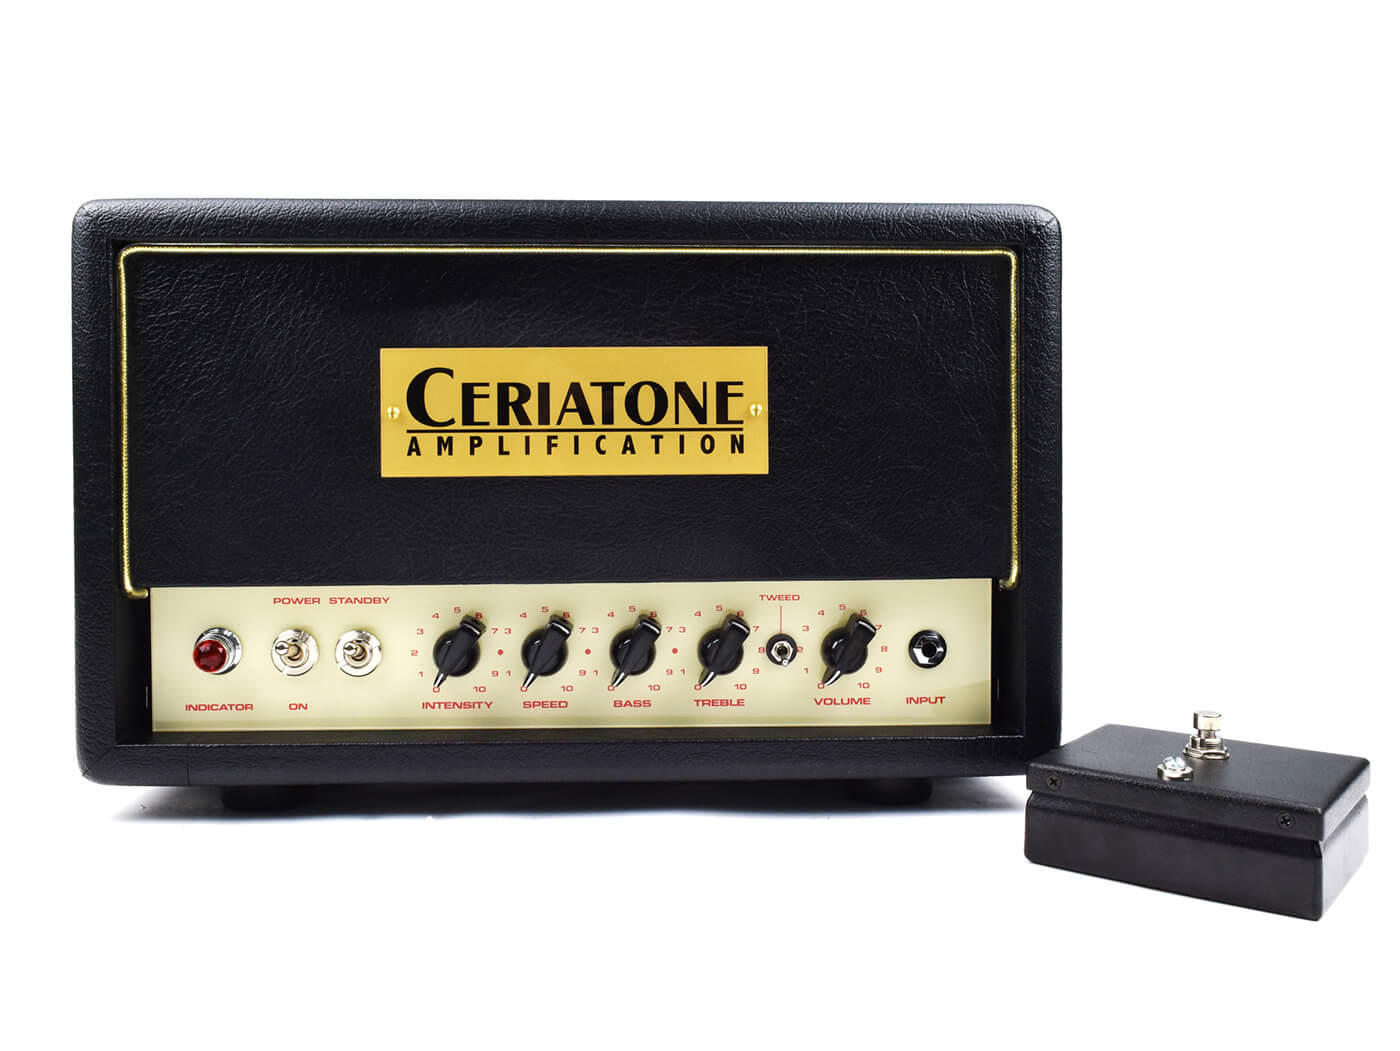 Nik Azam of Ceriatone Amplification is not afraid of